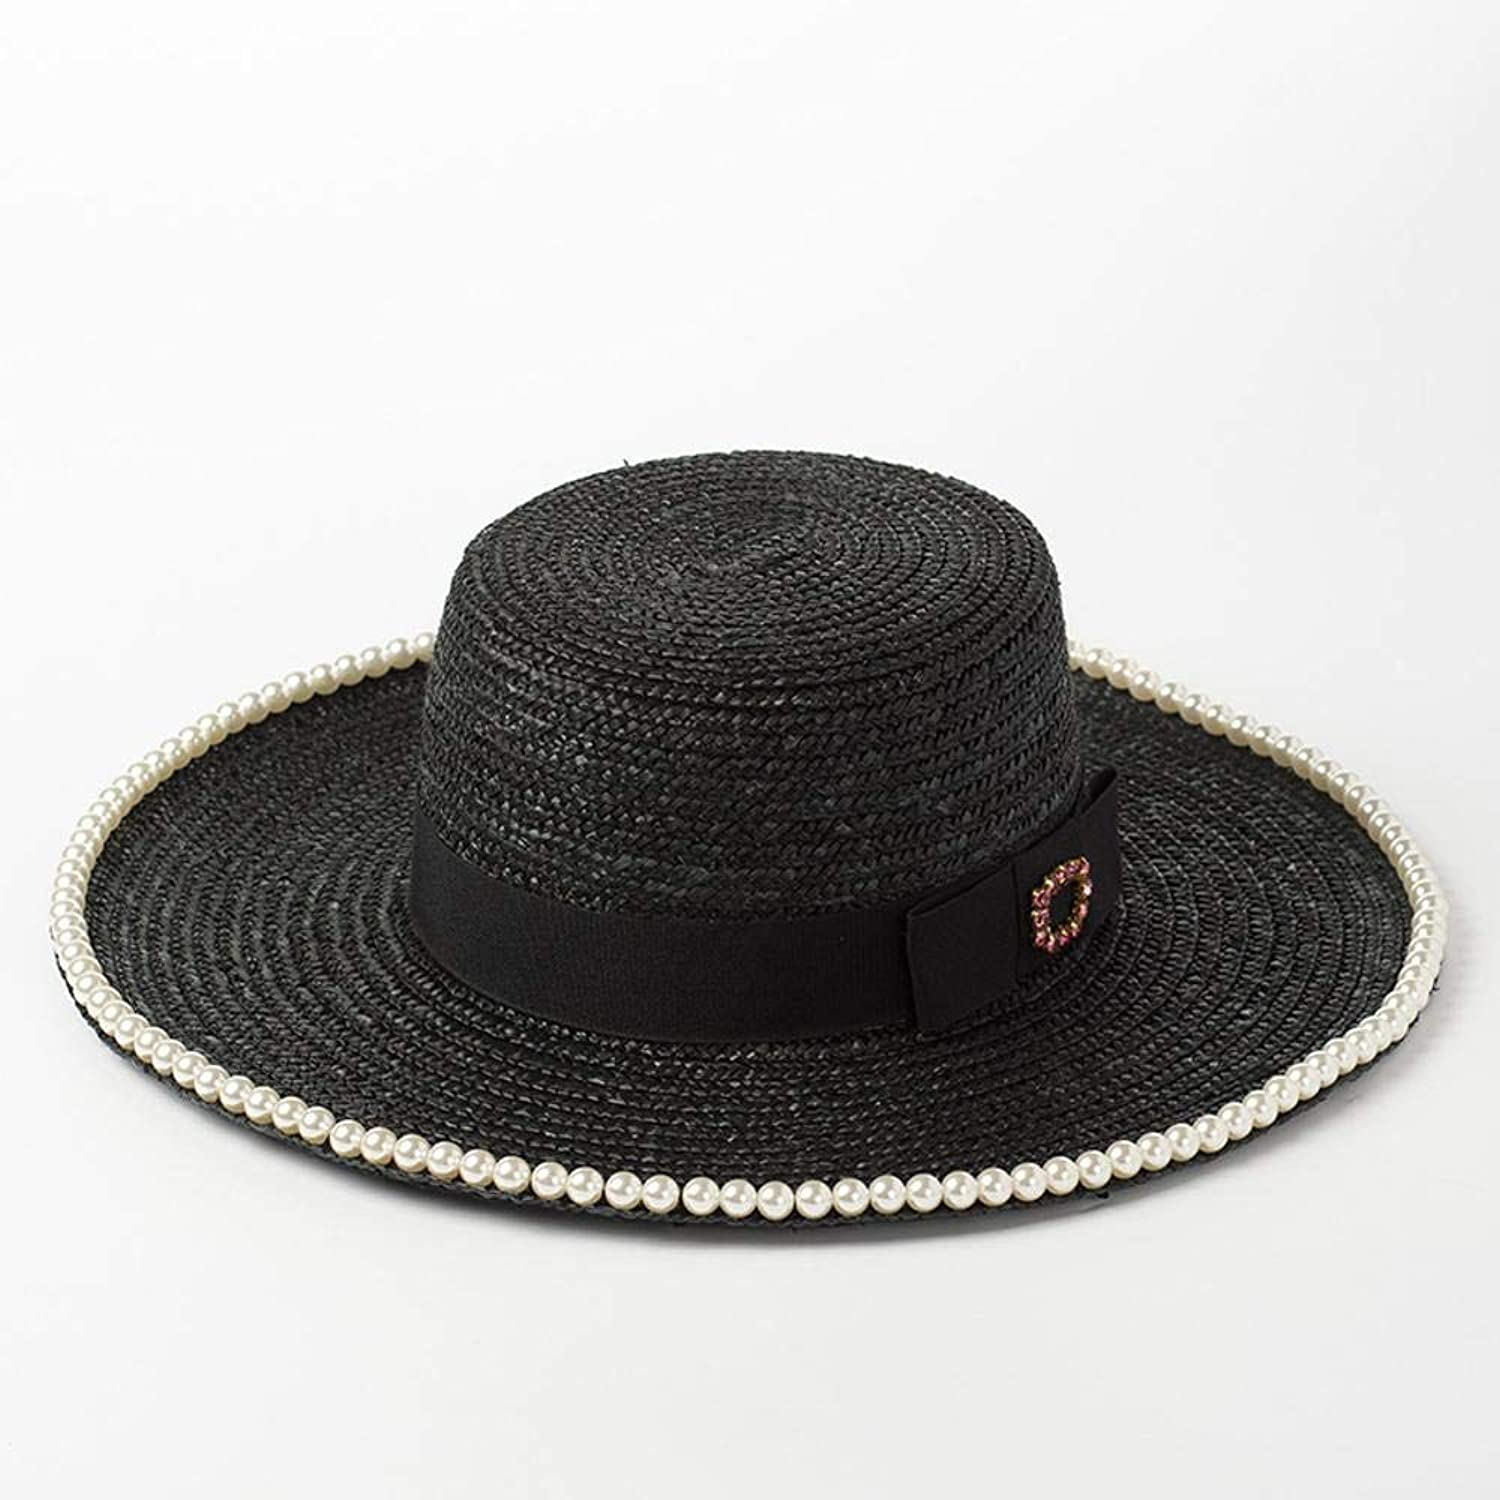 TtKj051 Lady Hats EuropeanStyle DiamondStudded BowTopped Straw Hat Lady Travel Beach Sun Visor